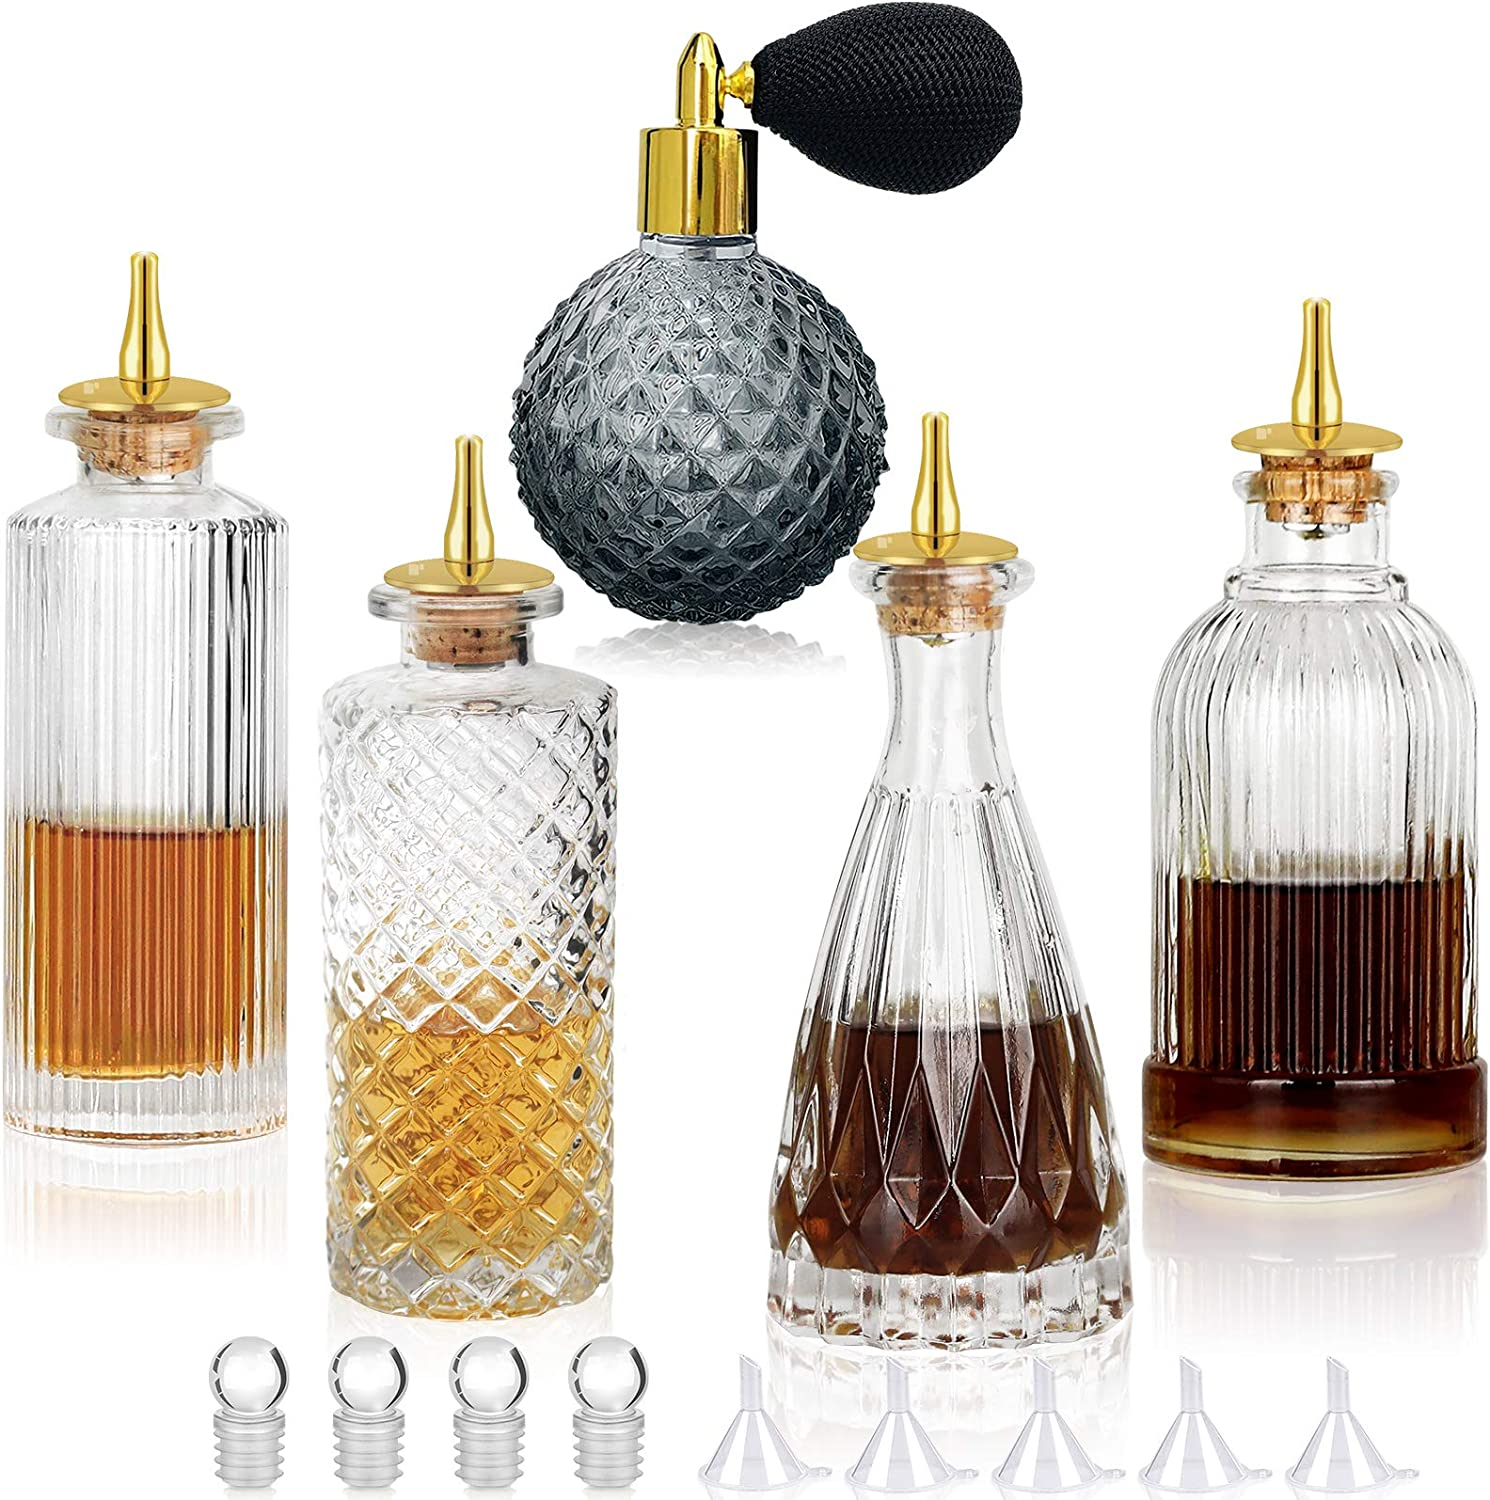 Bitters Bottle 5pcs Glass New sales Dash Sprayer shipfree Vermouth A for Set